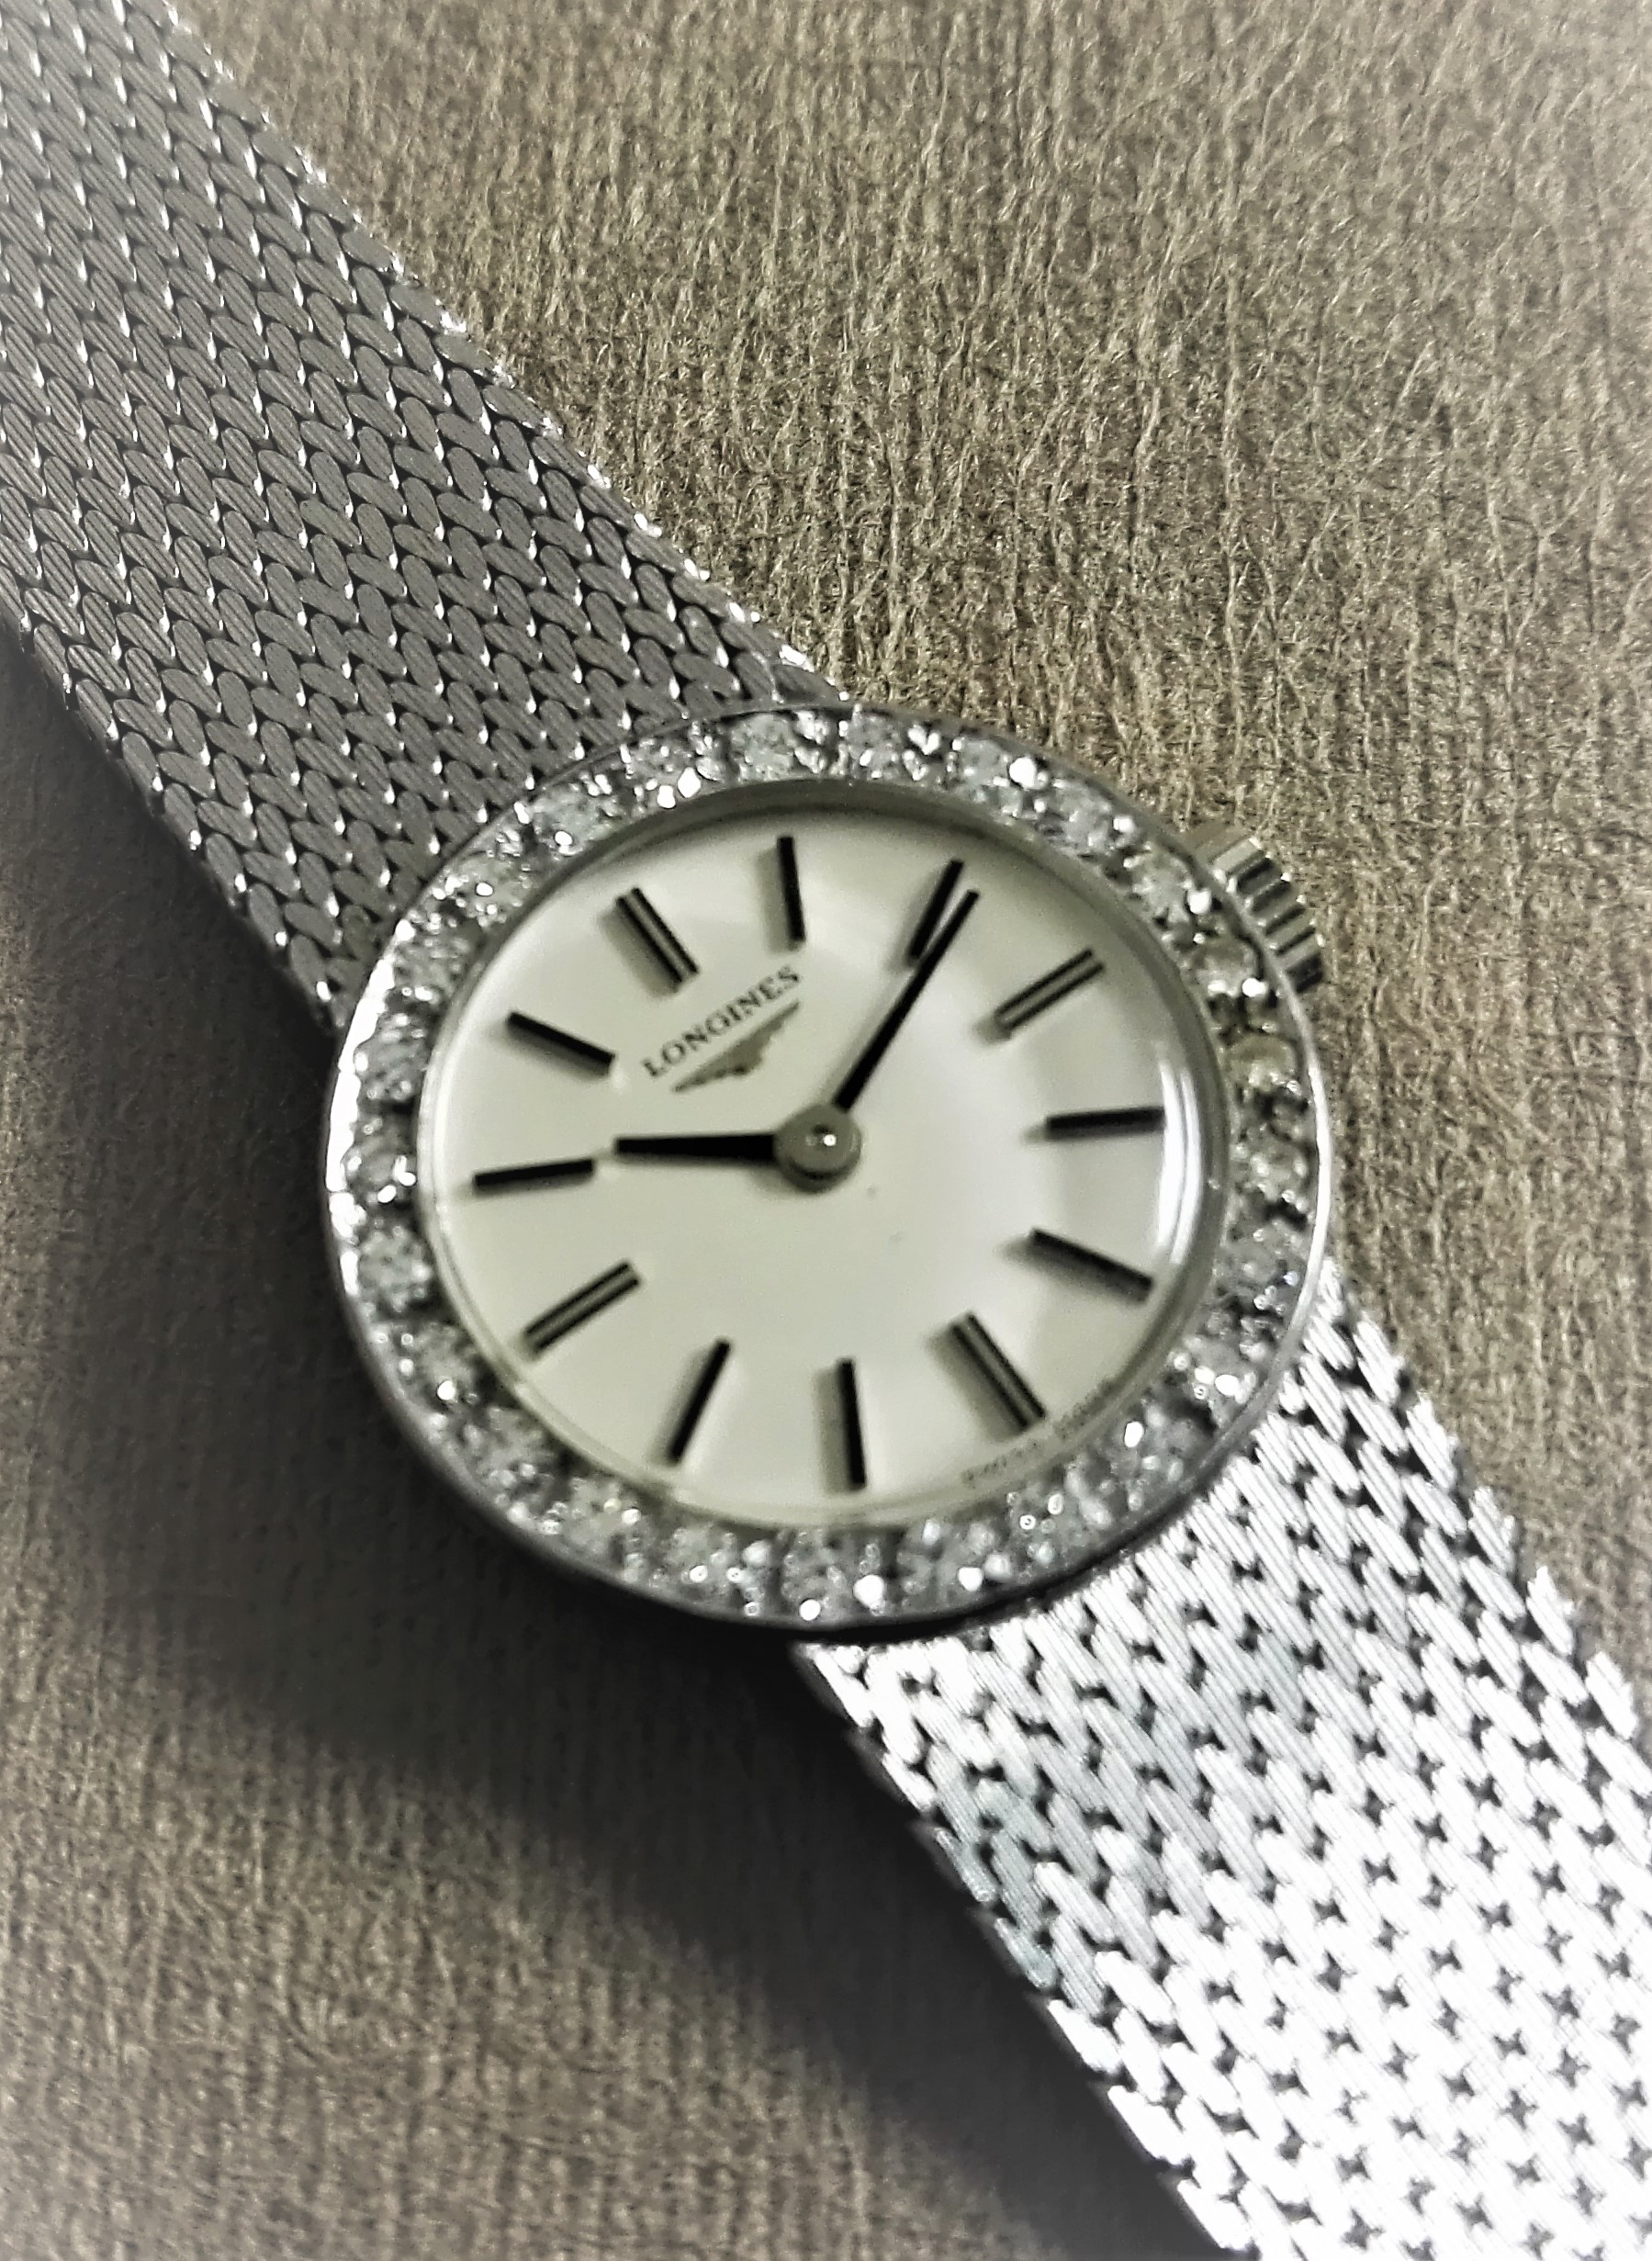 Longines rare vintage lady diamonds 18 kt white gold vip jewels watch | San Giorgio a Cremano